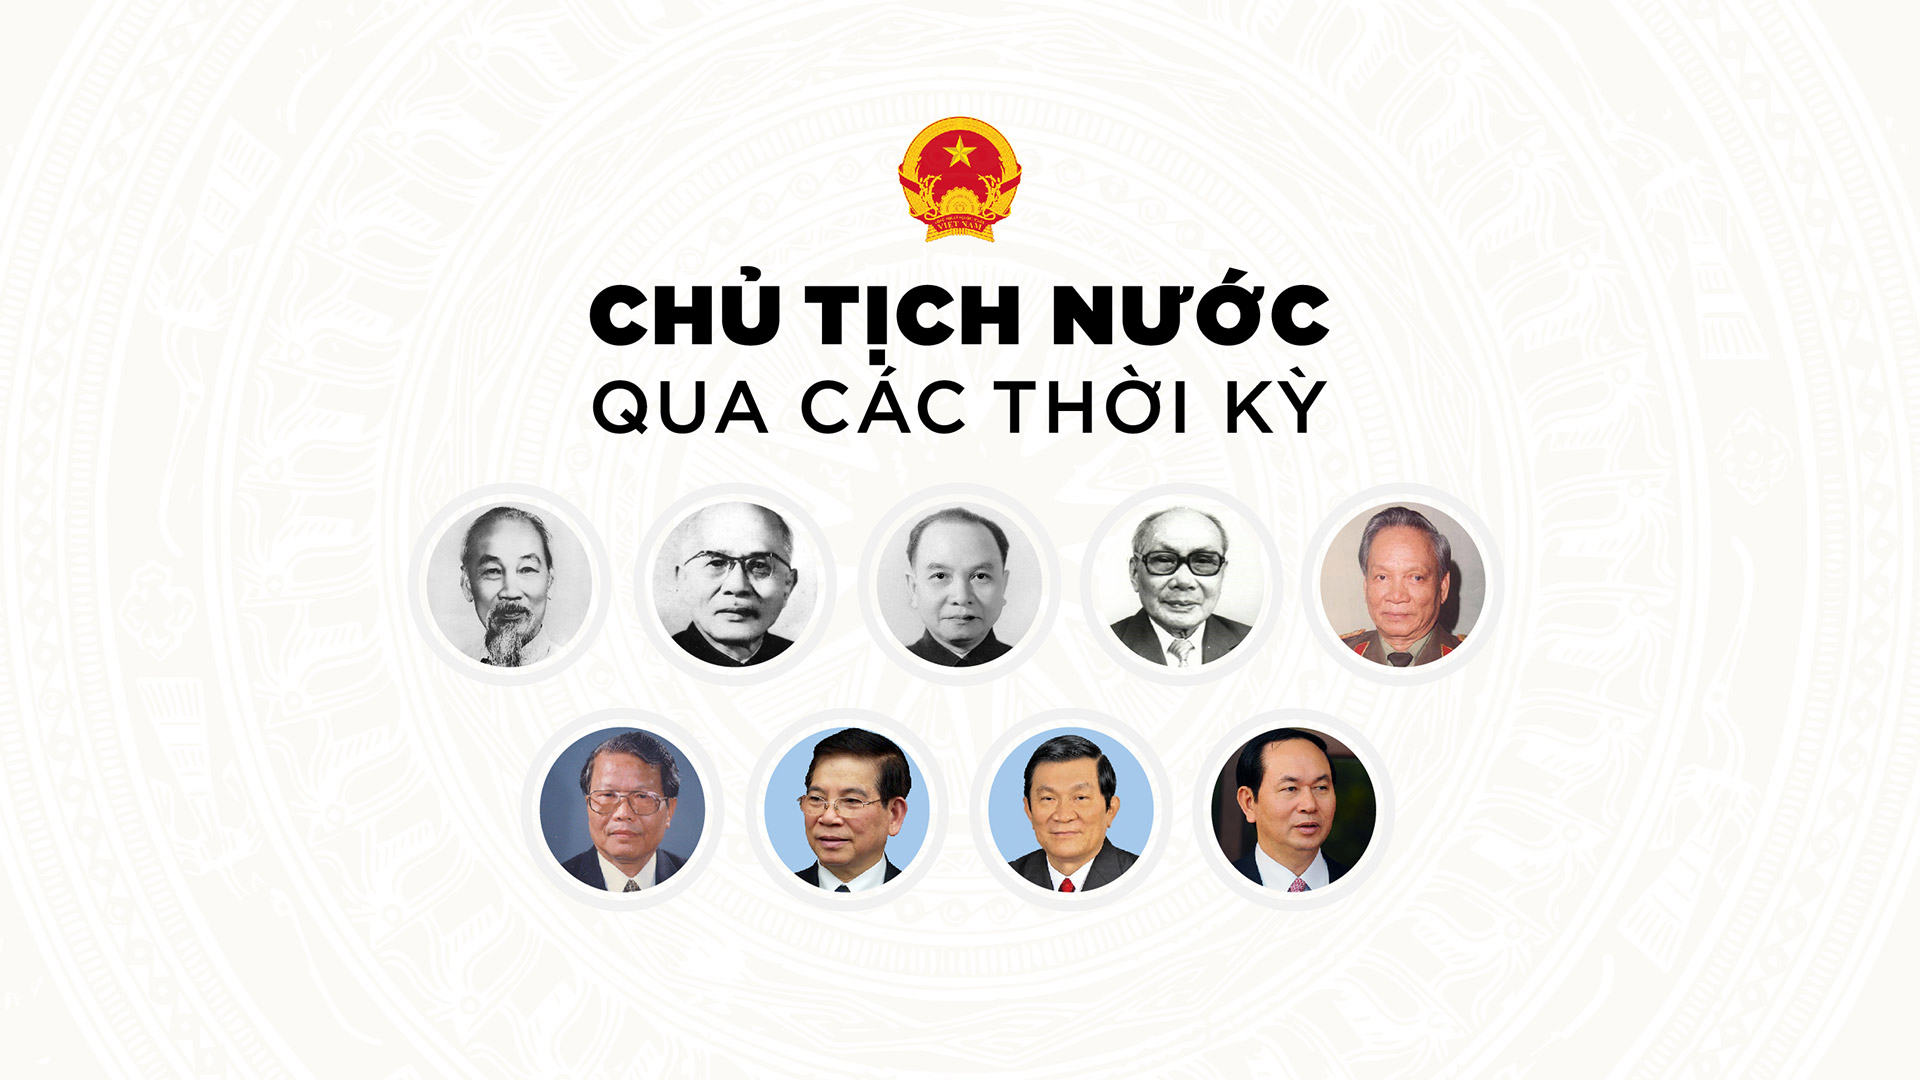 Infographic Chu tich nuoc qua cac thoi ky hinh anh 1